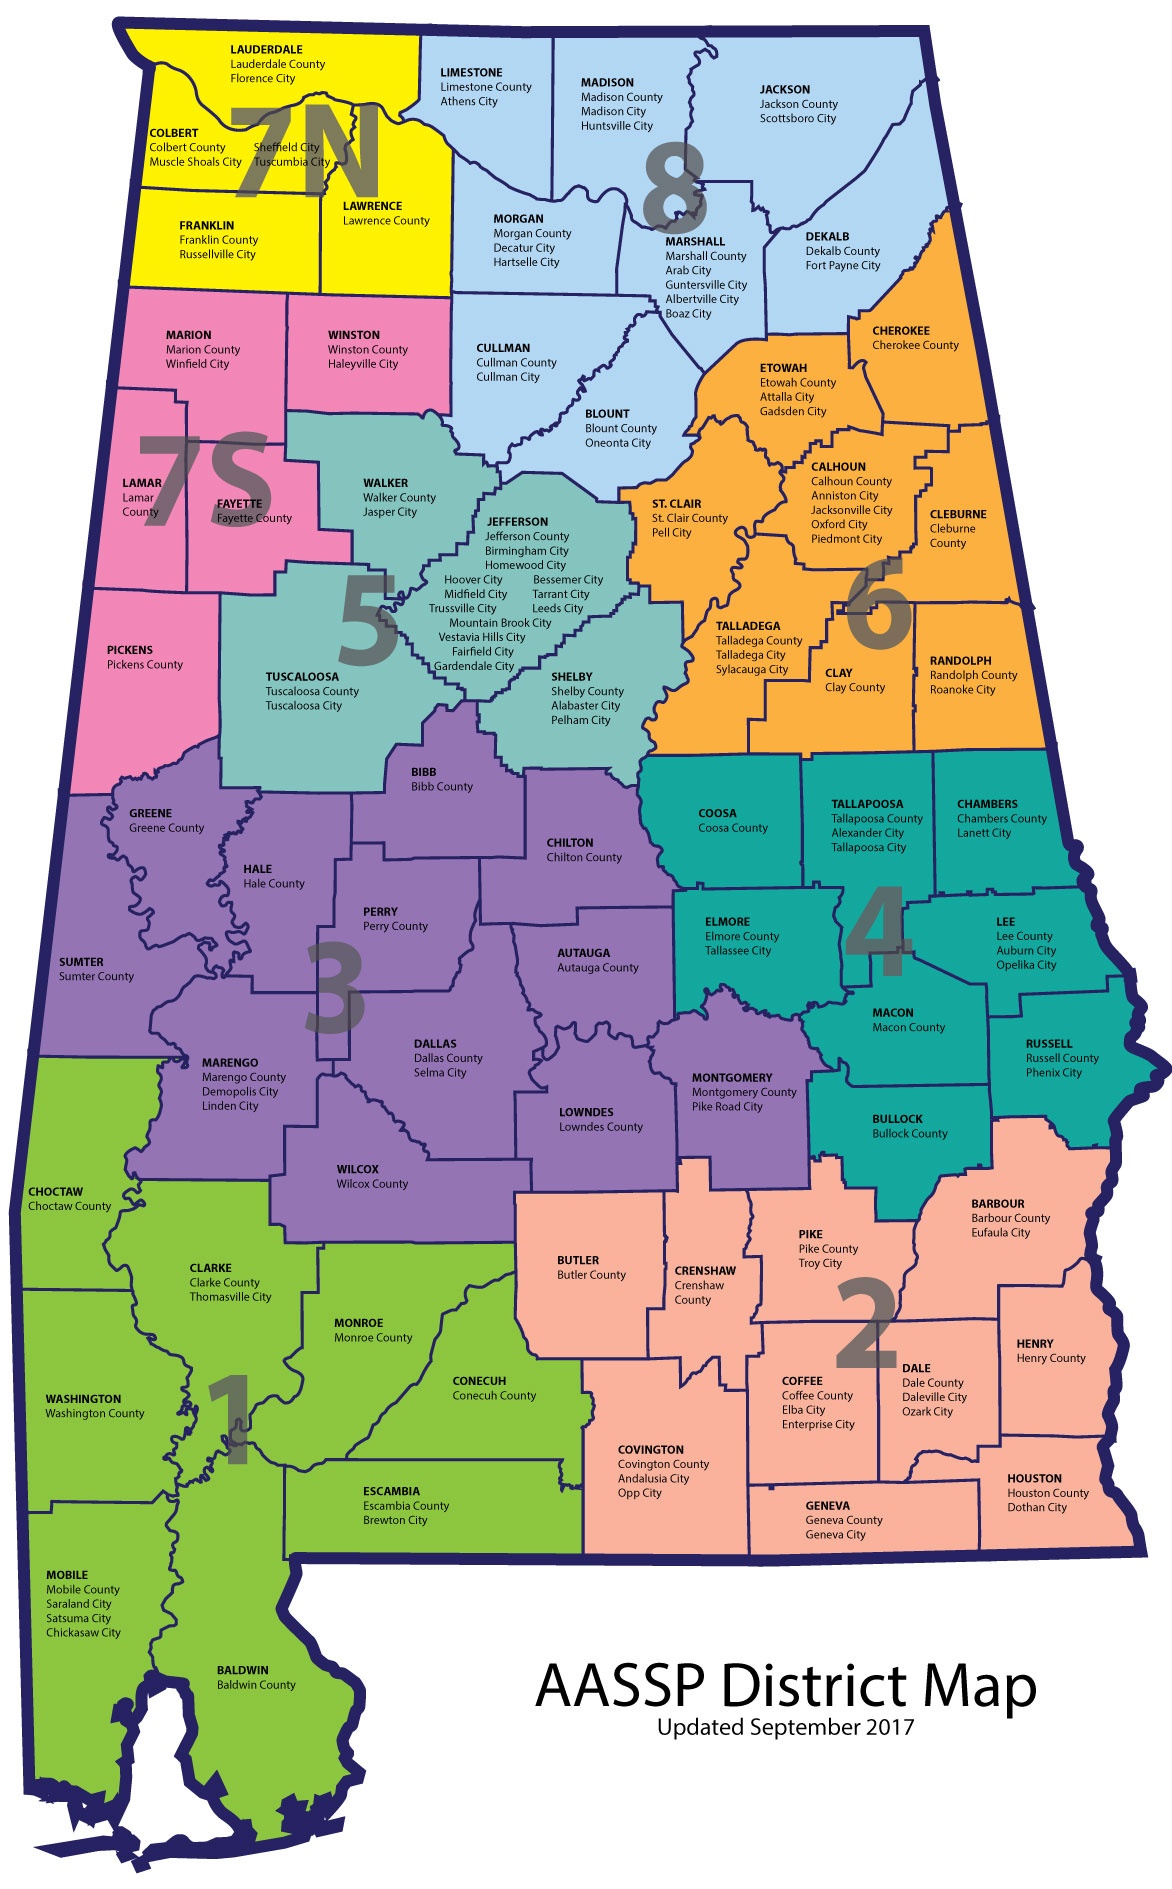 AP Districts on map of oxford alabama, map of troy university alabama, map of alabama and georgia, fort deposit alabama, lowndes county schools alabama, map of georgiana alabama, map of cobb county georgia, map of wetumpka alabama, map of louisiana alabama, map of carroll county mississippi, map of mobile alabama, cities in calhoun county alabama, map of alabama river alabama, cities in russell county alabama, lowndes middle school alabama, map of lowndes county mississippi, map of eclectic alabama, map of hayneville alabama, cities in lowndes county alabama, plantations in lowndes county alabama,